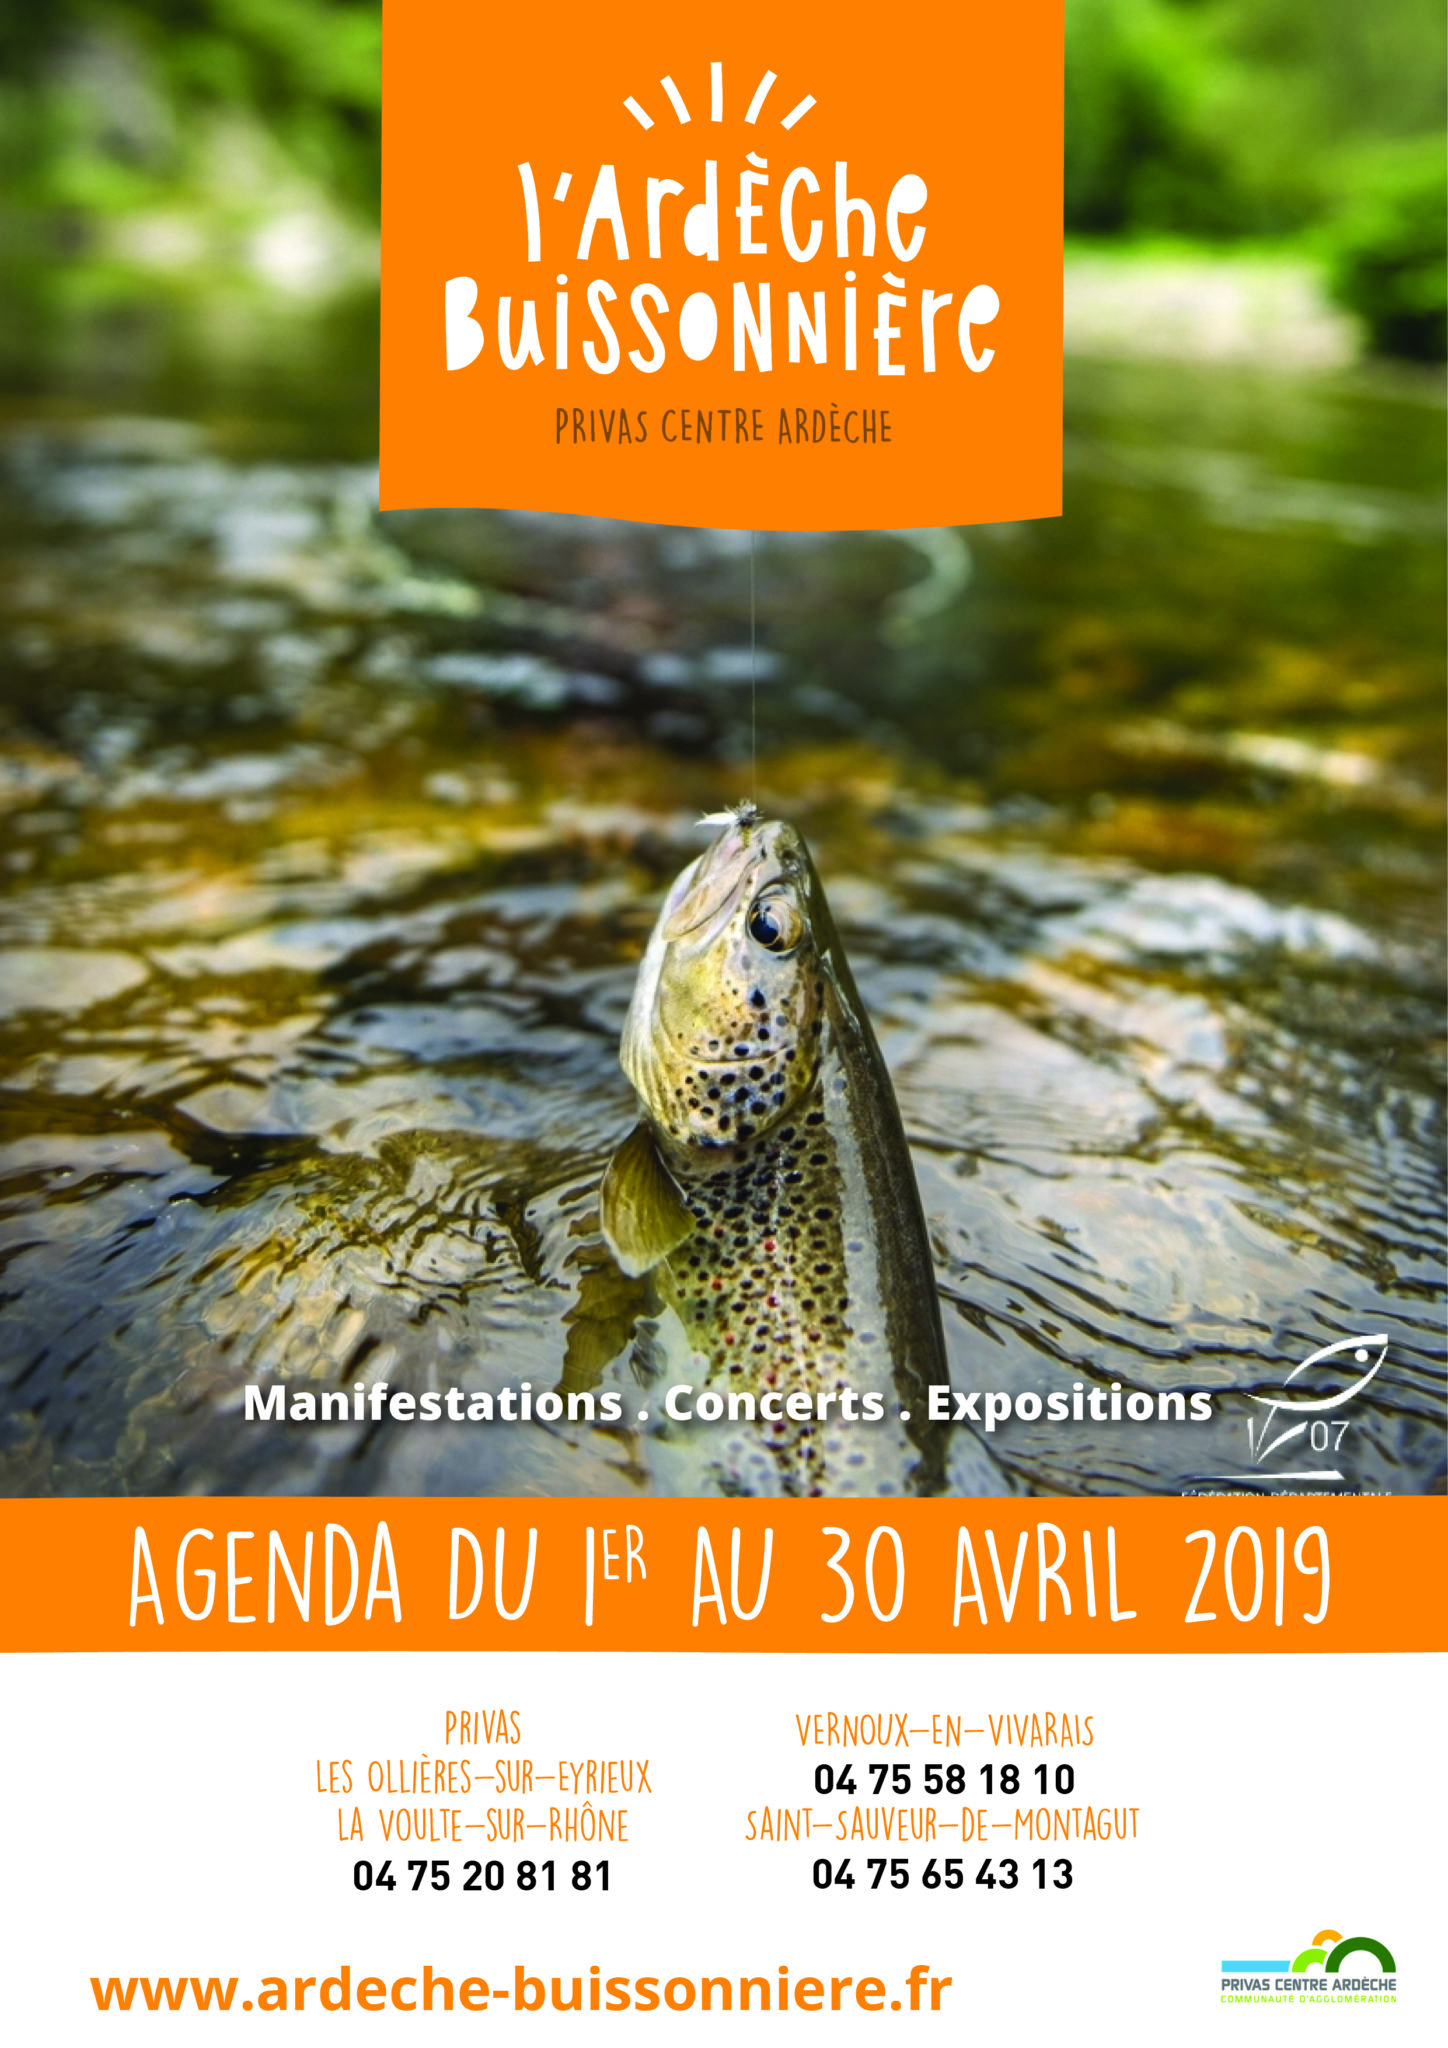 April 2019 events agenda - Ardèche Buissonnière